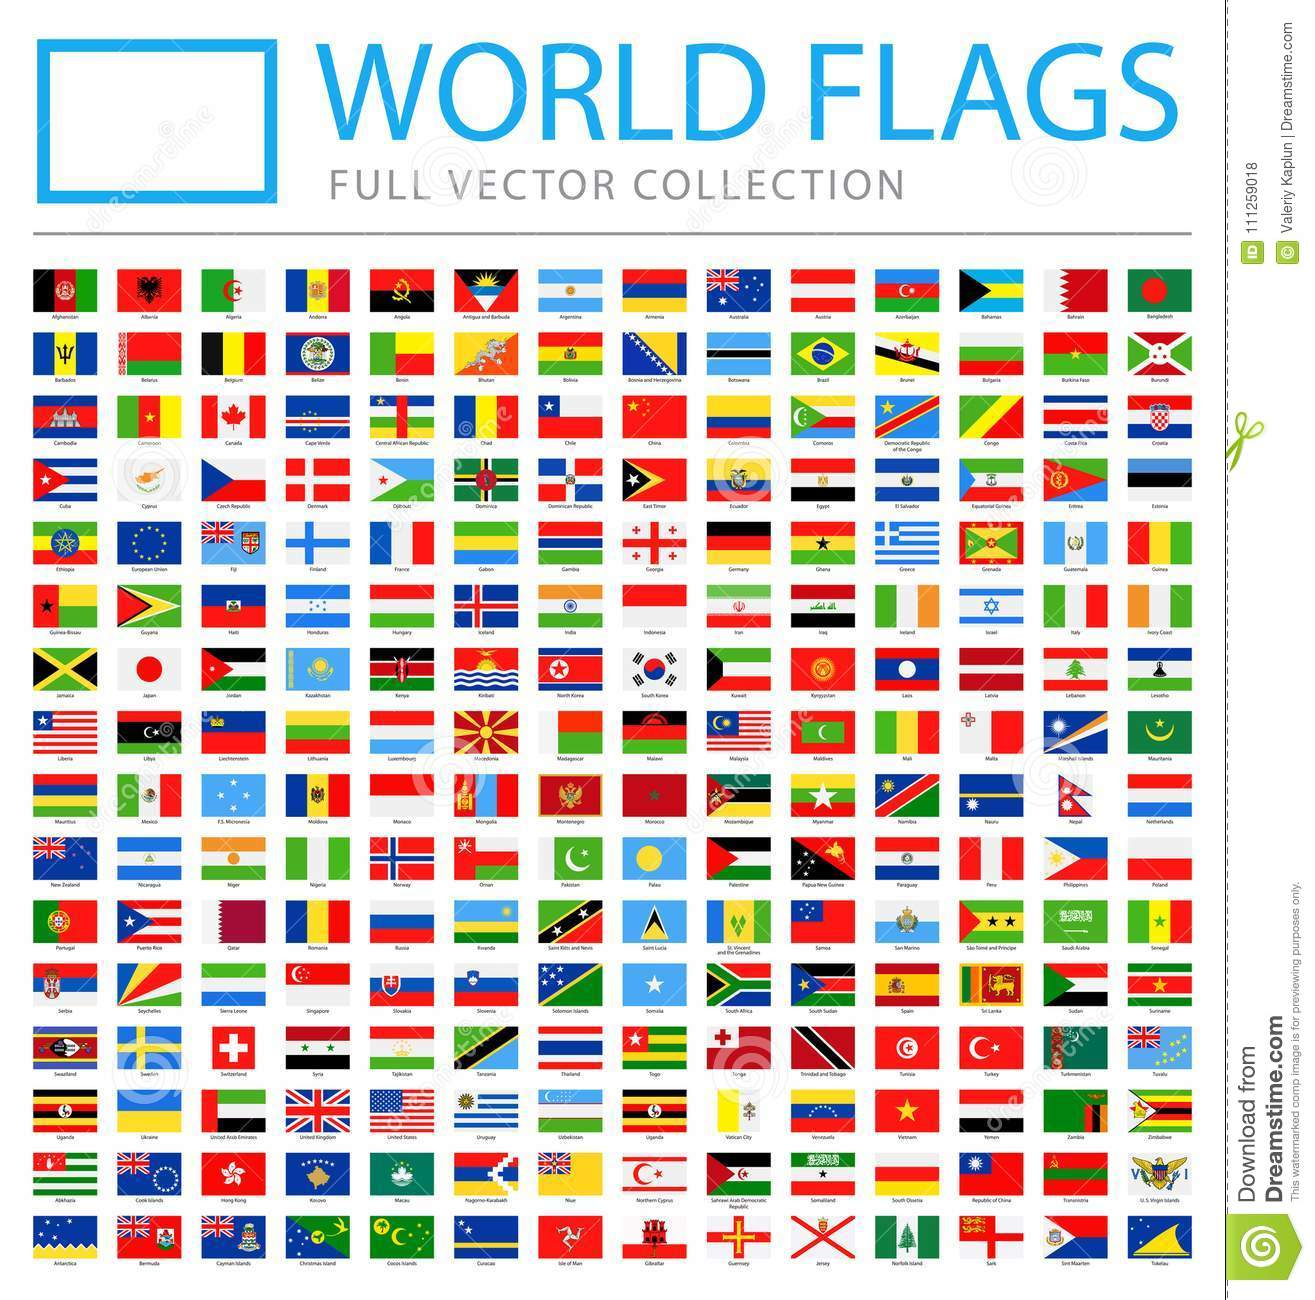 All World Flags - New Additional List of Countries and Territories - Vector Rectangle Flat Icons